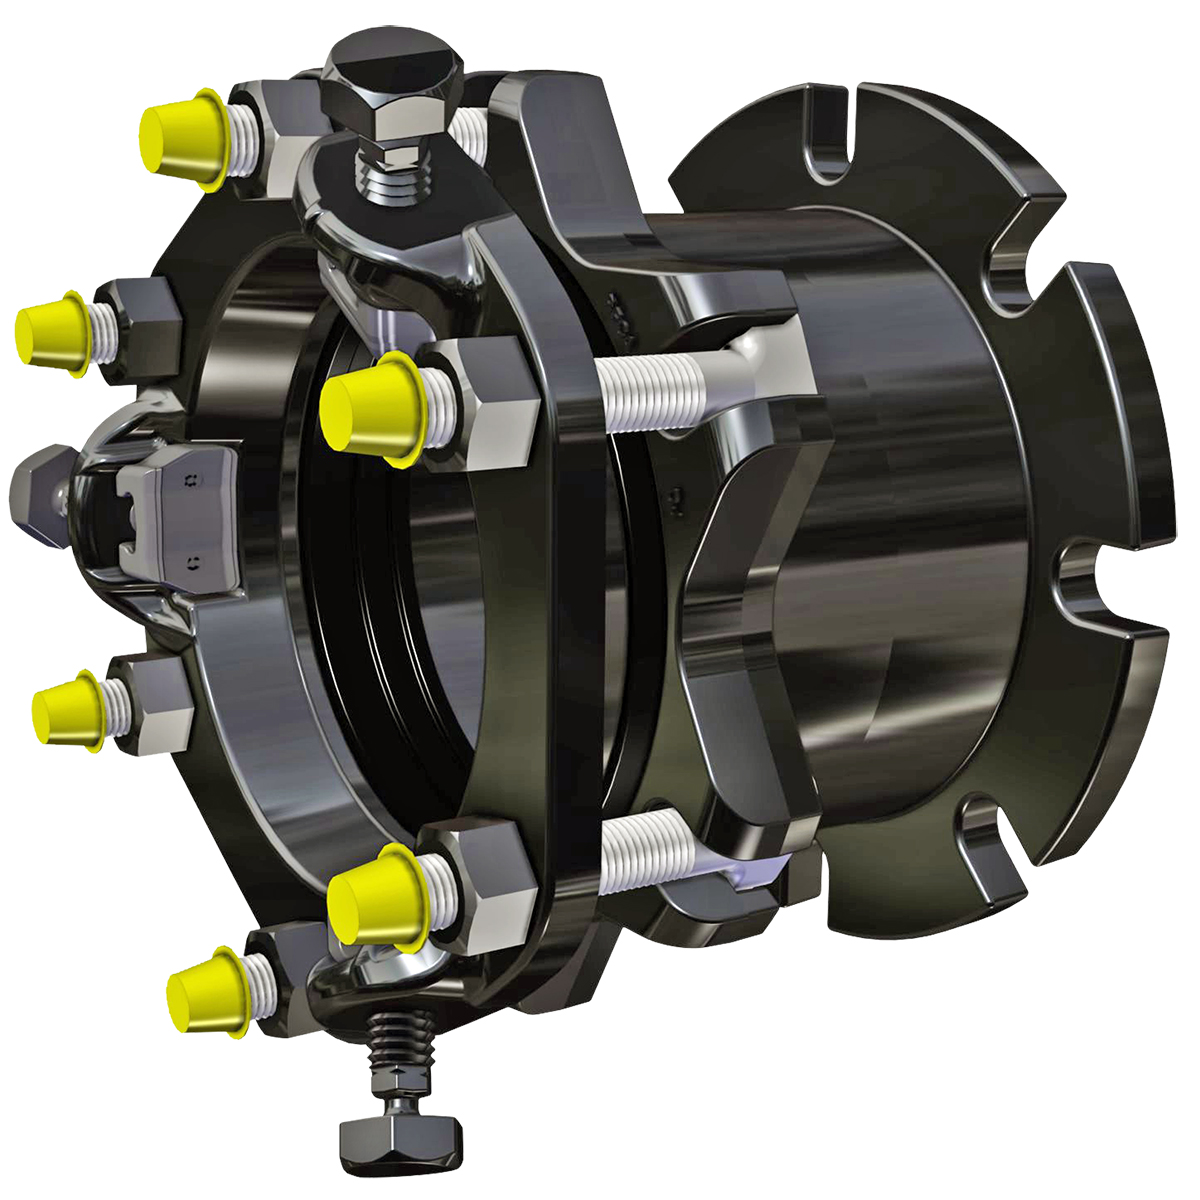 RFCA - Restrained flange coupling adapter.